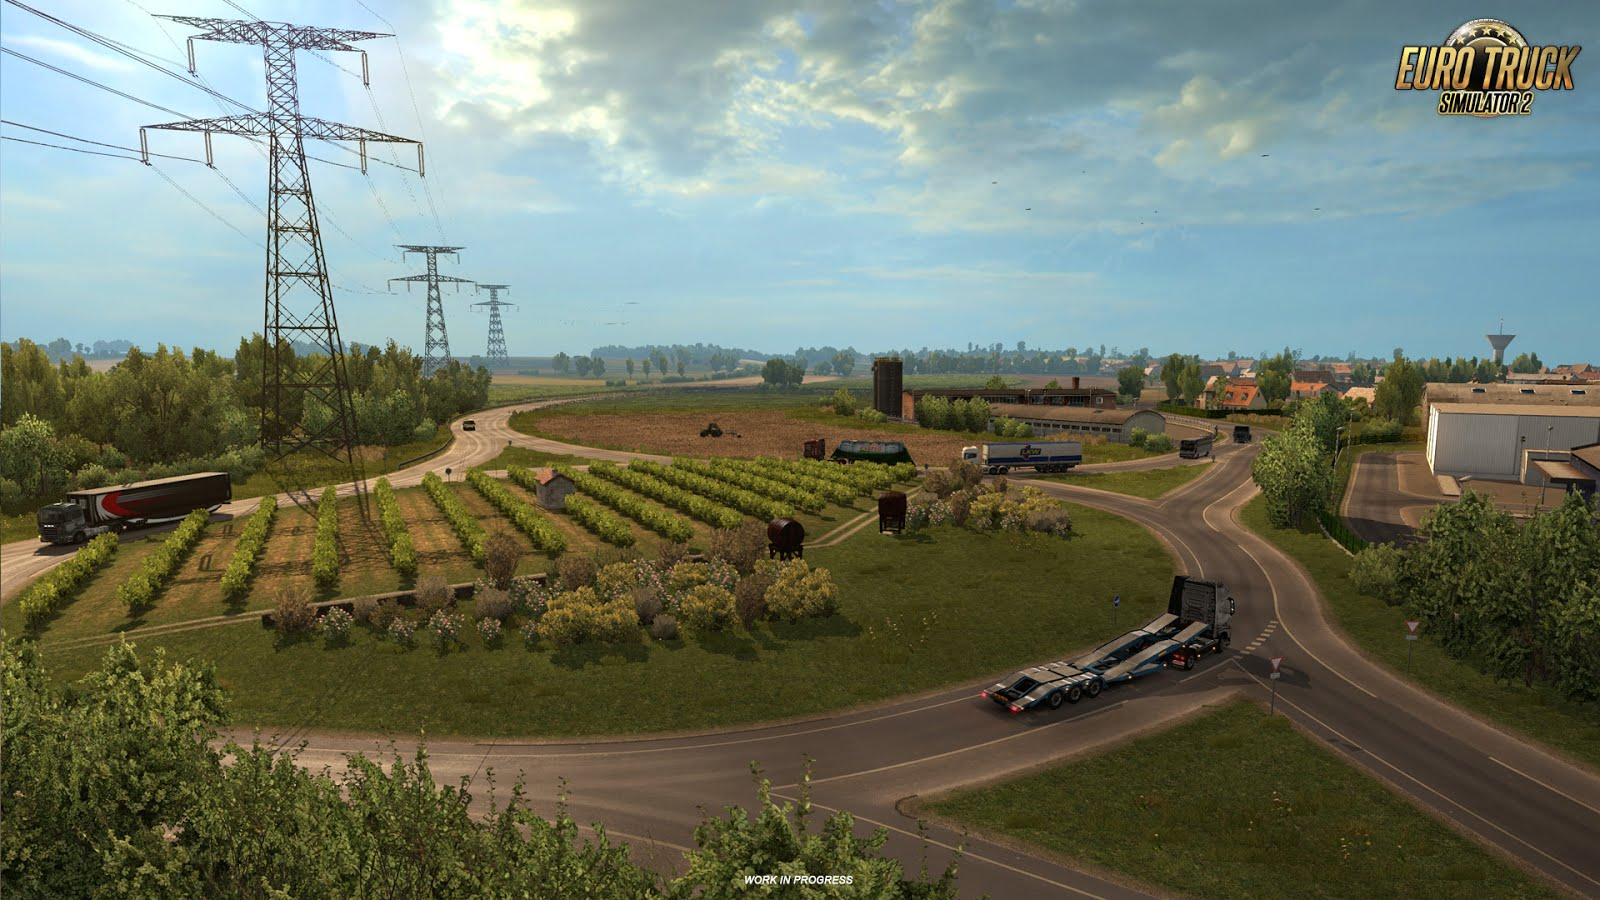 Vive La France DLC (Upcoming Soon) for ETS 2